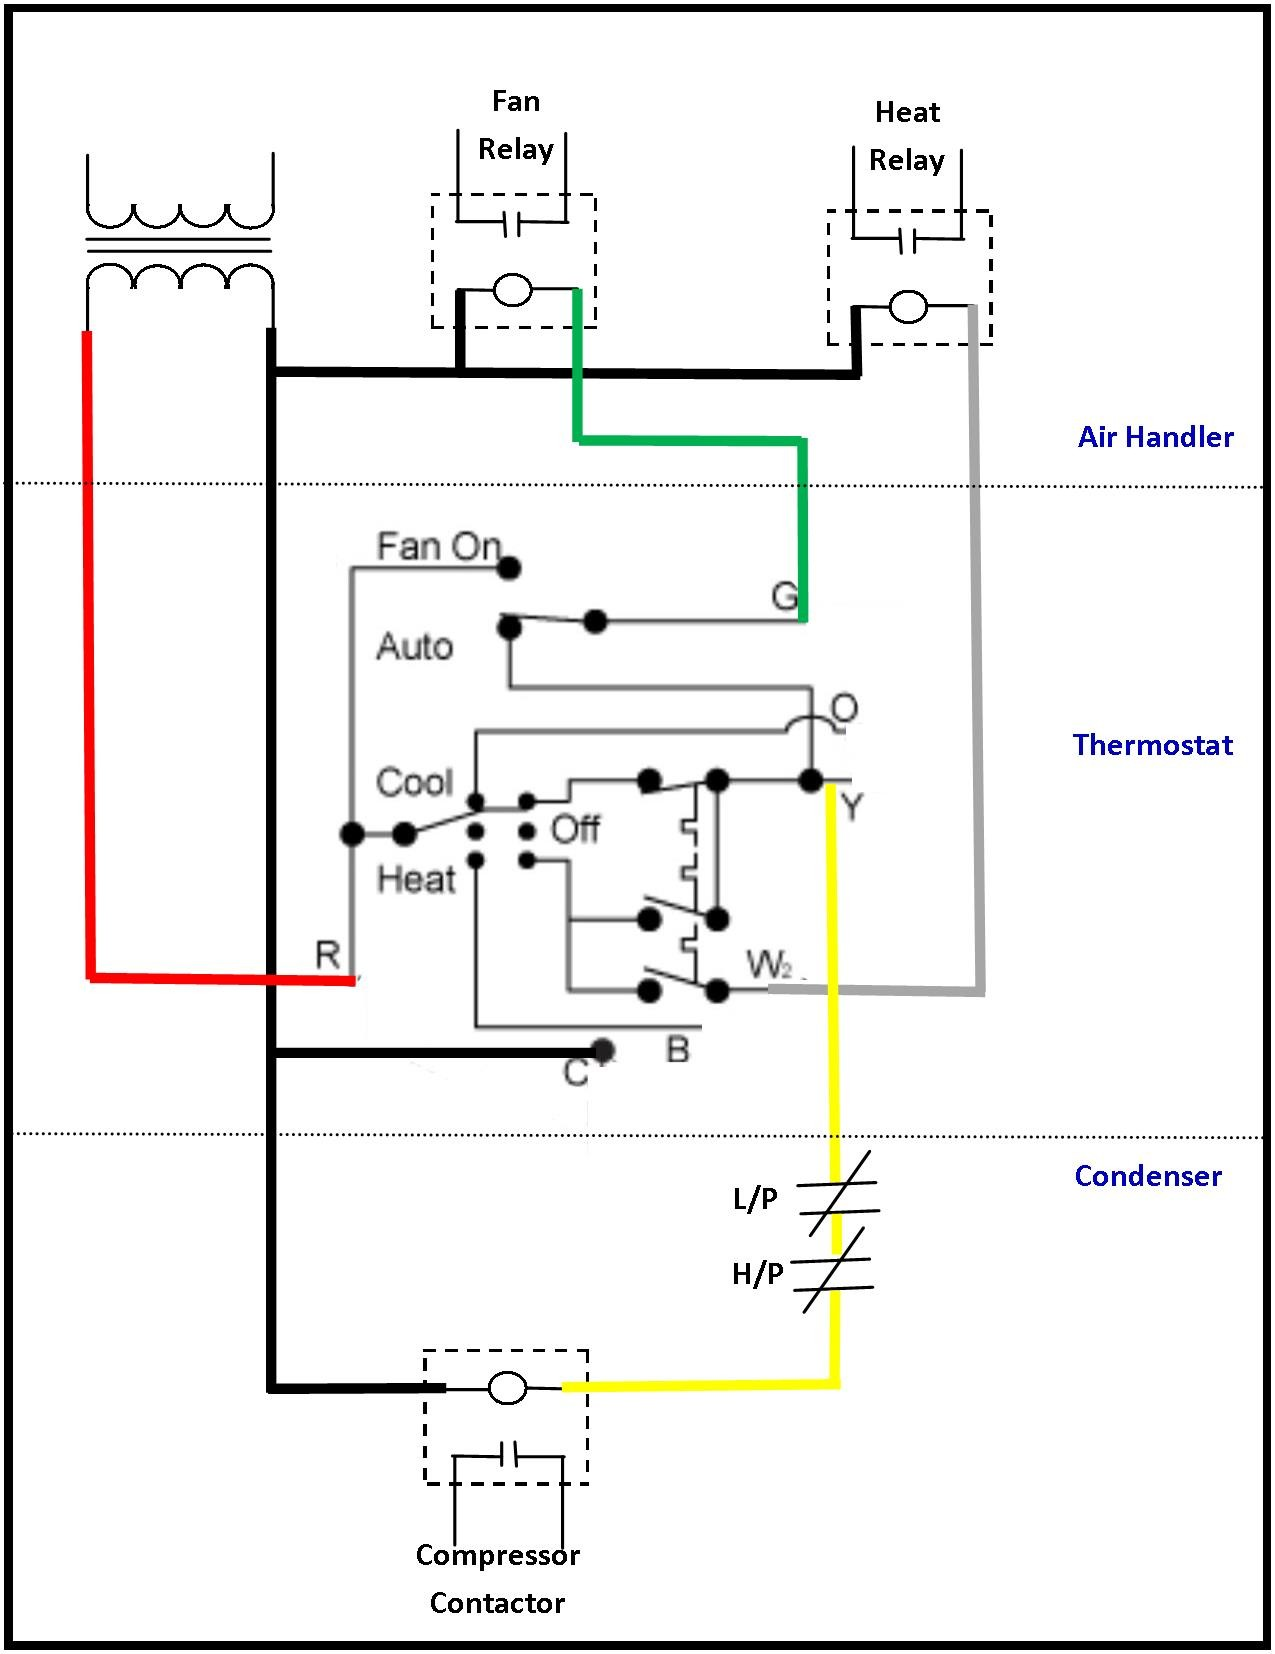 Double Pole Thermostat Wiring Diagram Baseboard Heater 120v Electric Unique For A 120 Volt Line Voltage Of